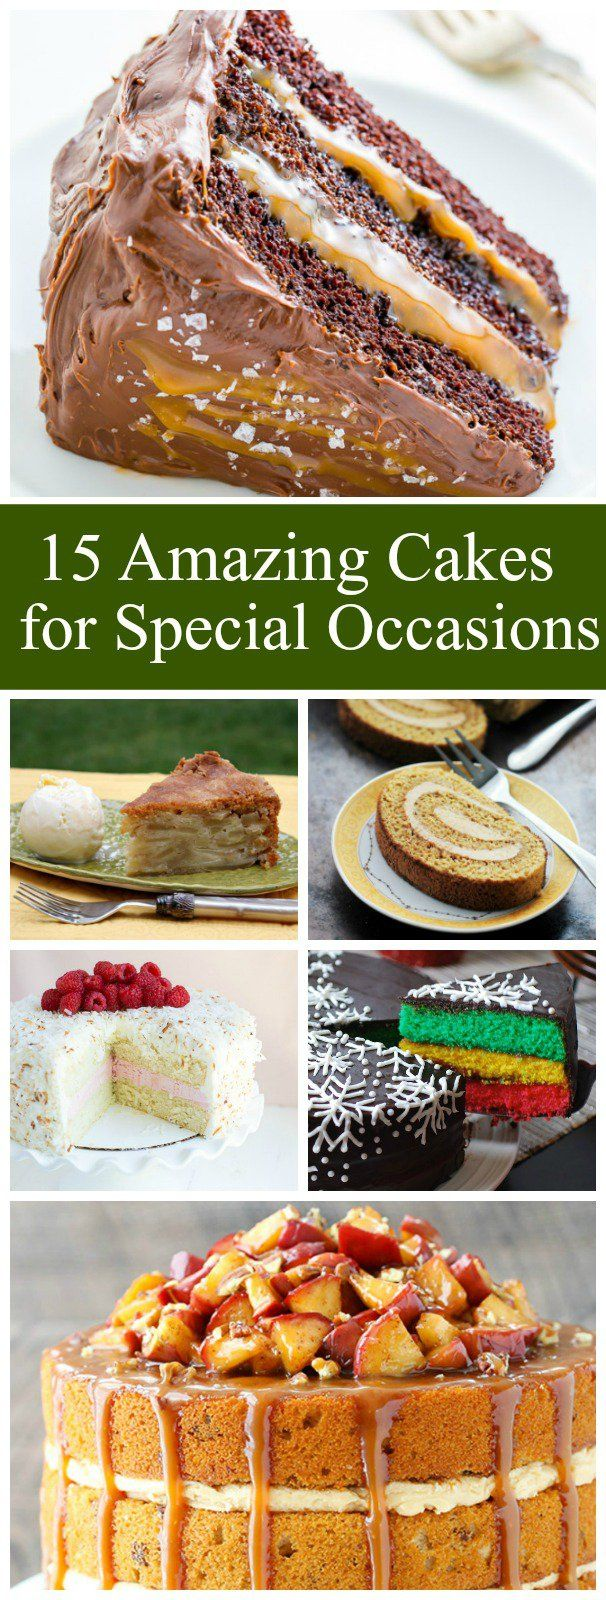 15 Amazing Cake Recipes to Bake for Special Occasions:  Apple Pie Cake, Chocolate Salted Caramel Cake, Coconut Cake, Chocolate- Kahula Cake, Chocolate Peanut Butter Cup Cake, Tiramisu Cake Roll and more!